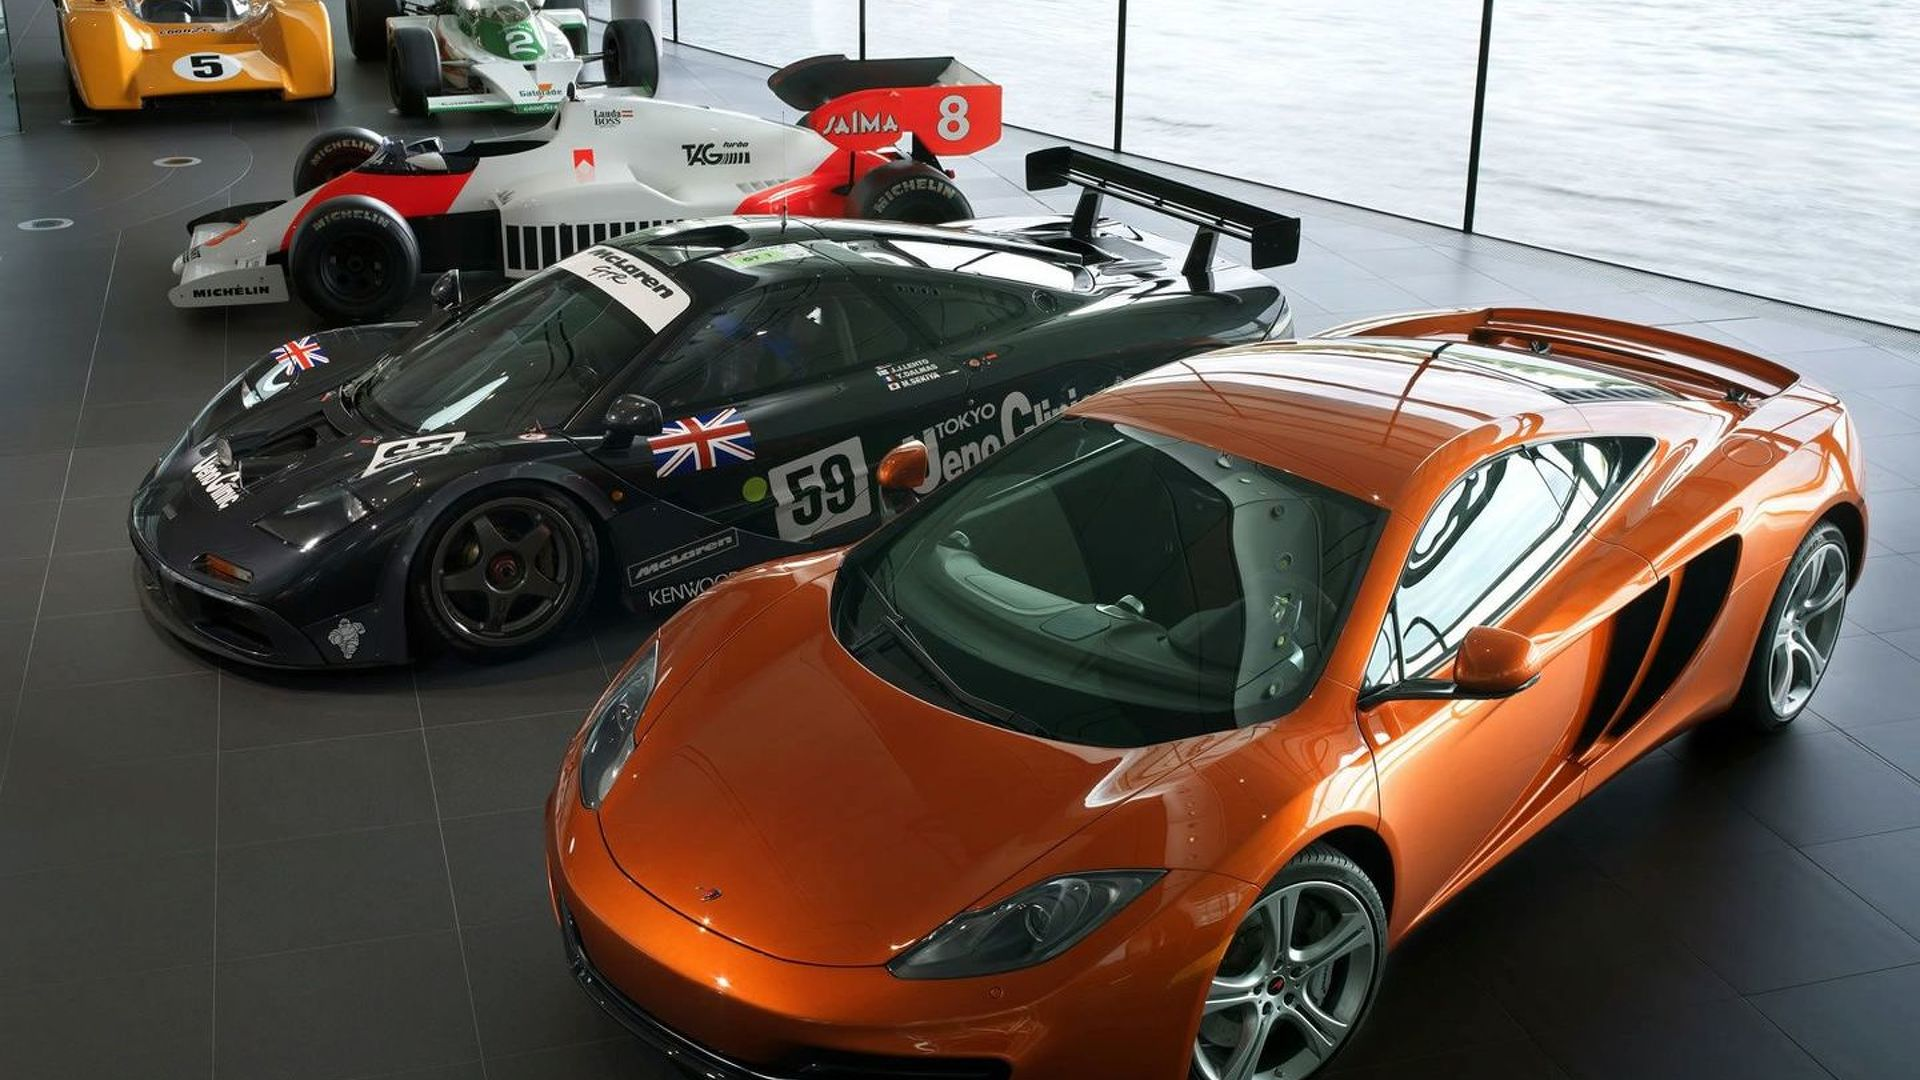 McLaren MP4-12C Confirmed for U.S. as Global Dealer Network is Established